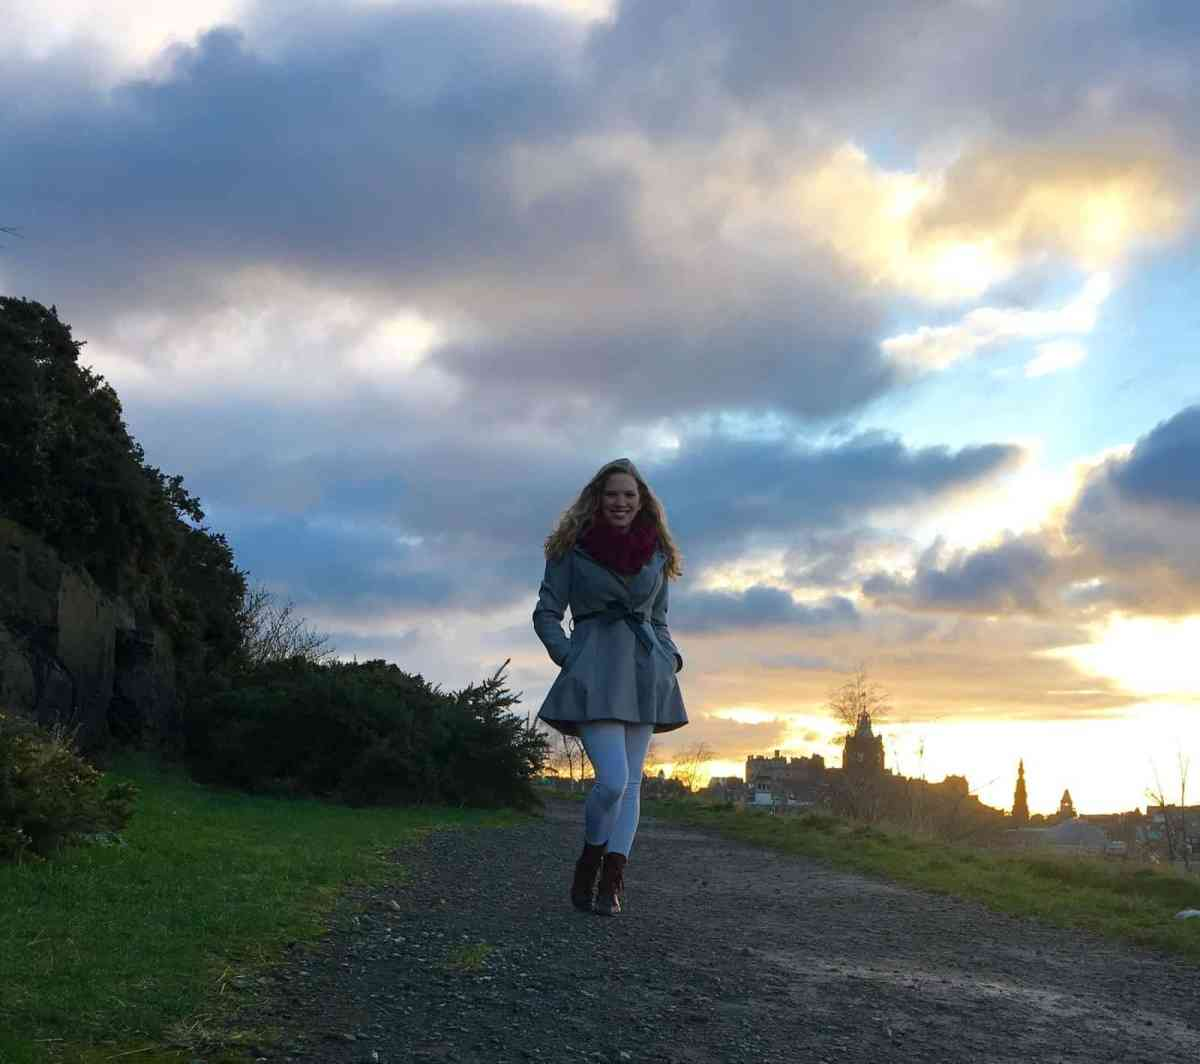 Girls Who Travel   Author Shelby poses in Scotland. A cloudy, yet bright, sky and the Edinburgh skyline are in the background